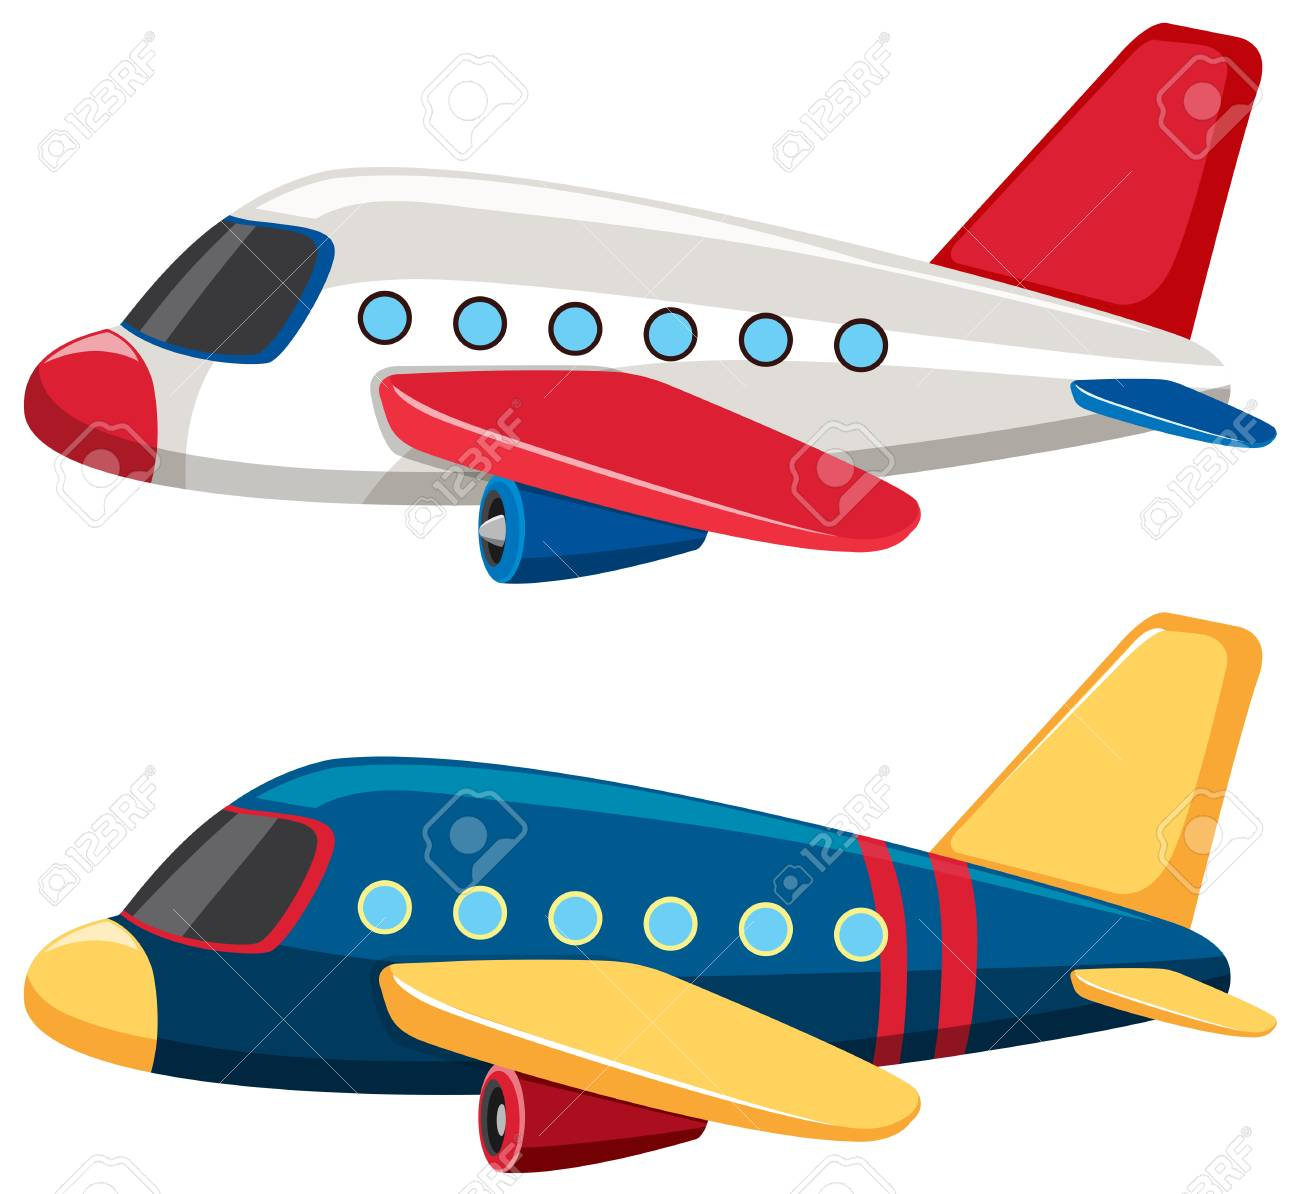 Two airplanes with blue and white colors illustration.